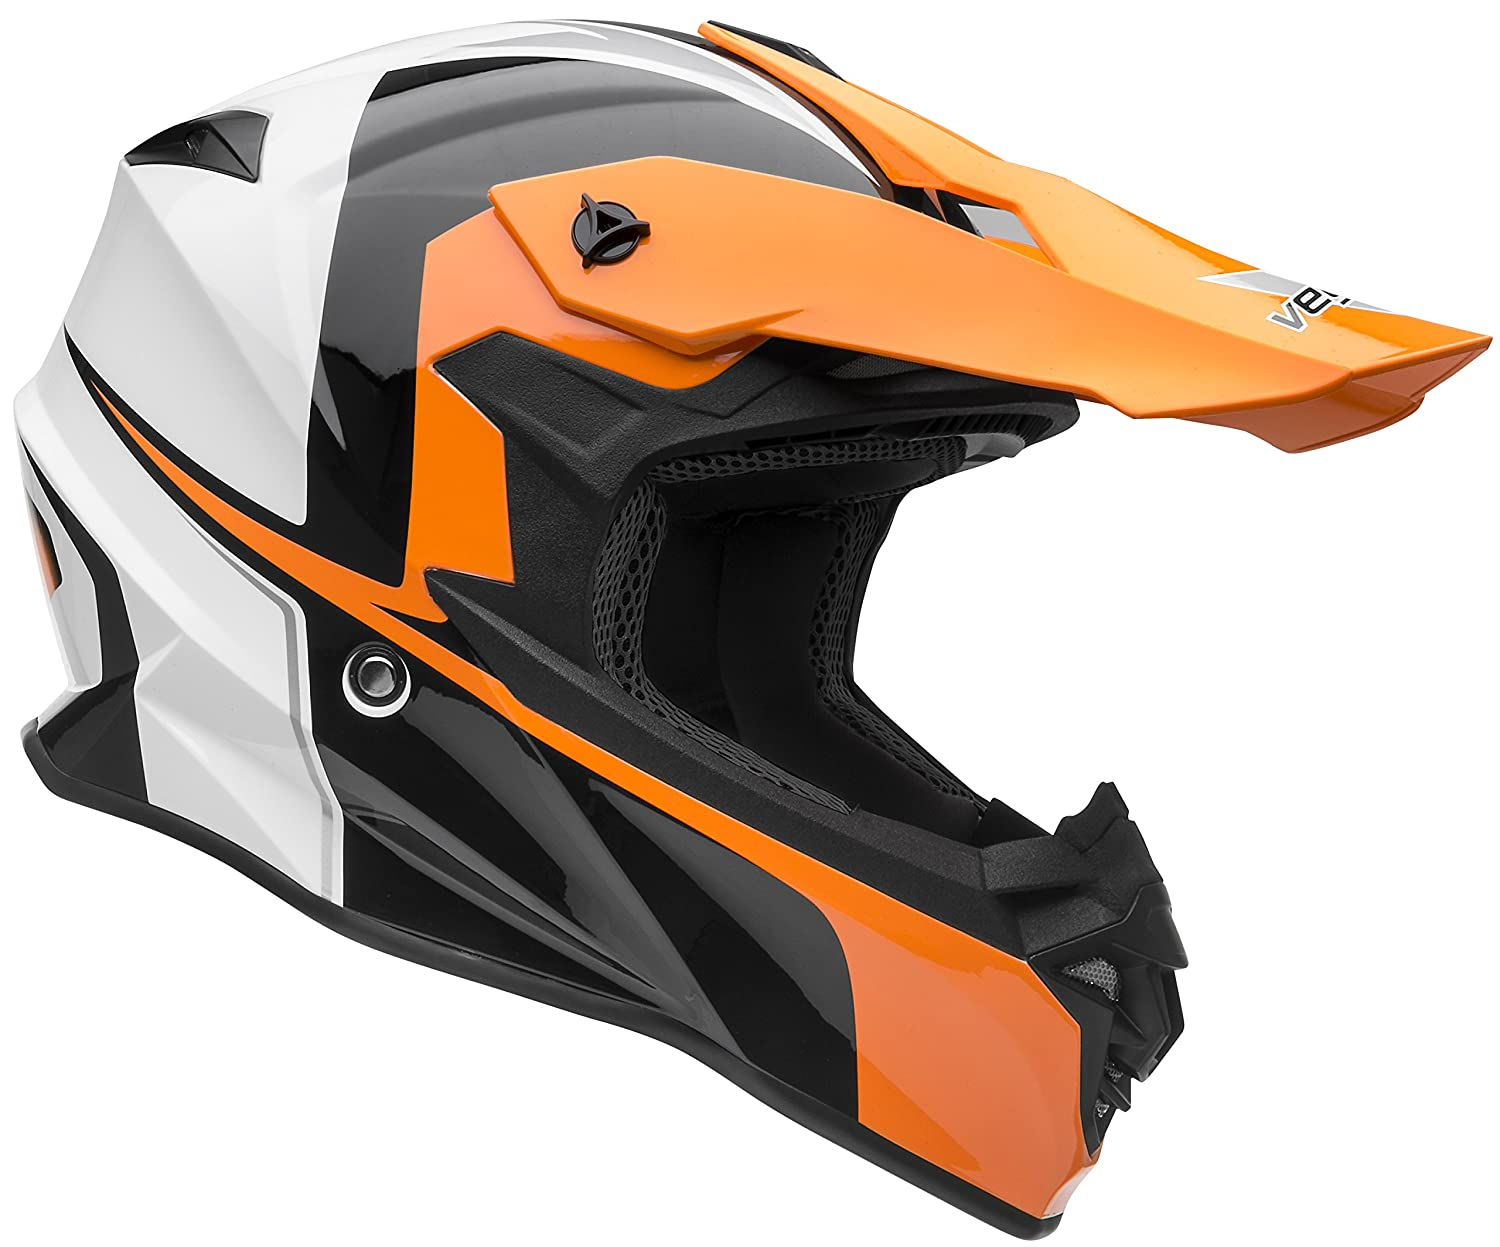 Vega Helmets VF1 Lightweight Dirt Bike Helmet – Off-Road Full Face Helmet for ATV Motocross MX Enduro Quad Sport,